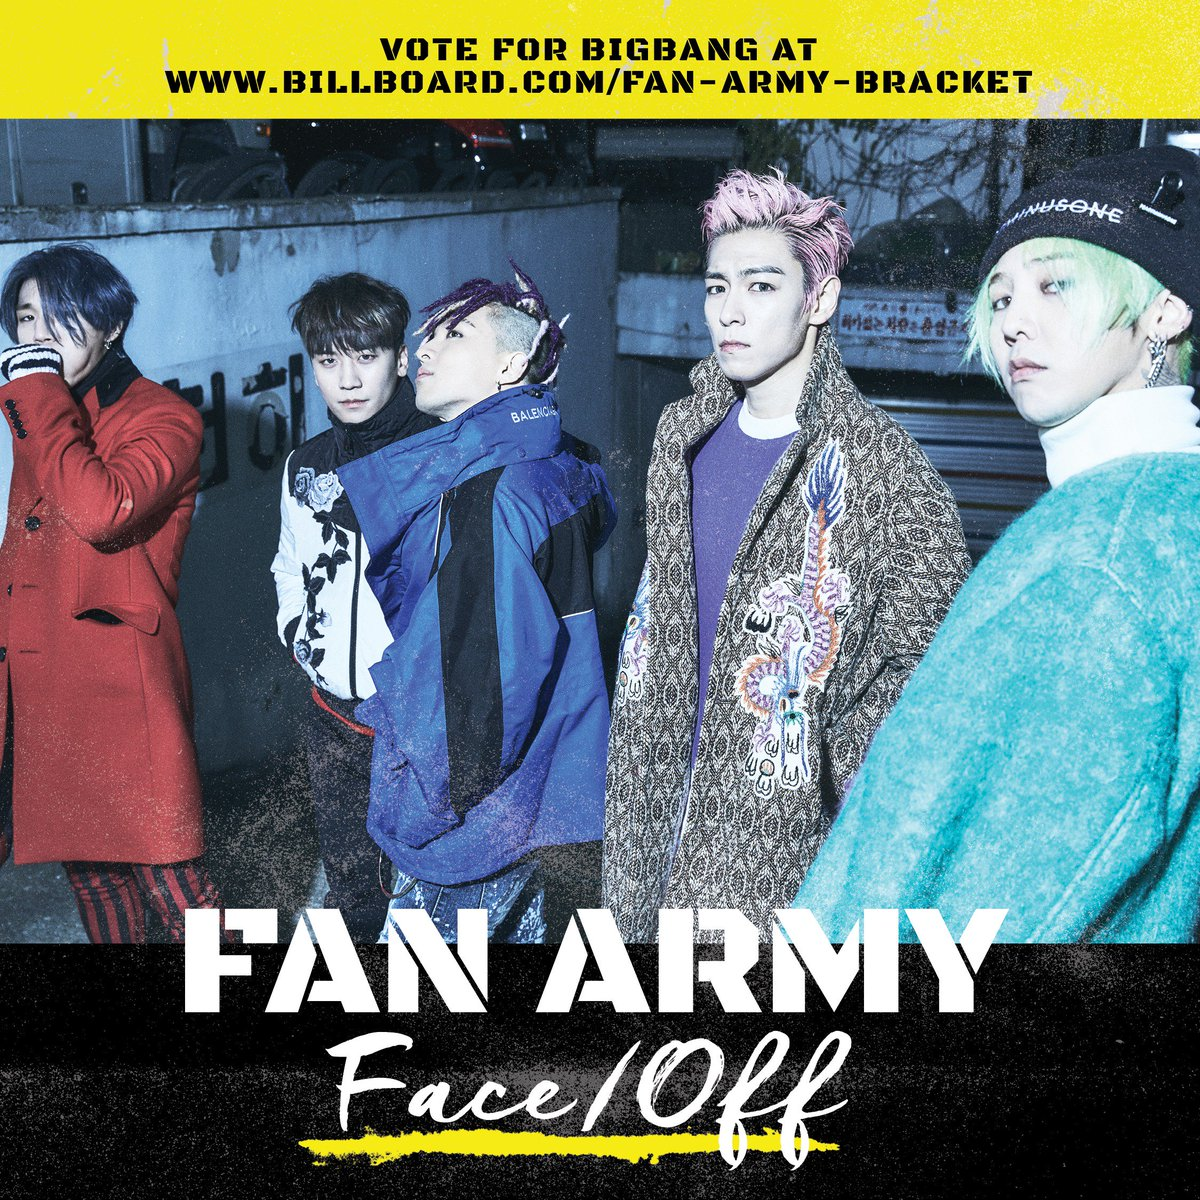 Will your fan army win? Vote for the #FanArmyFaceOff here: https://t.co/FRh46LTgPX